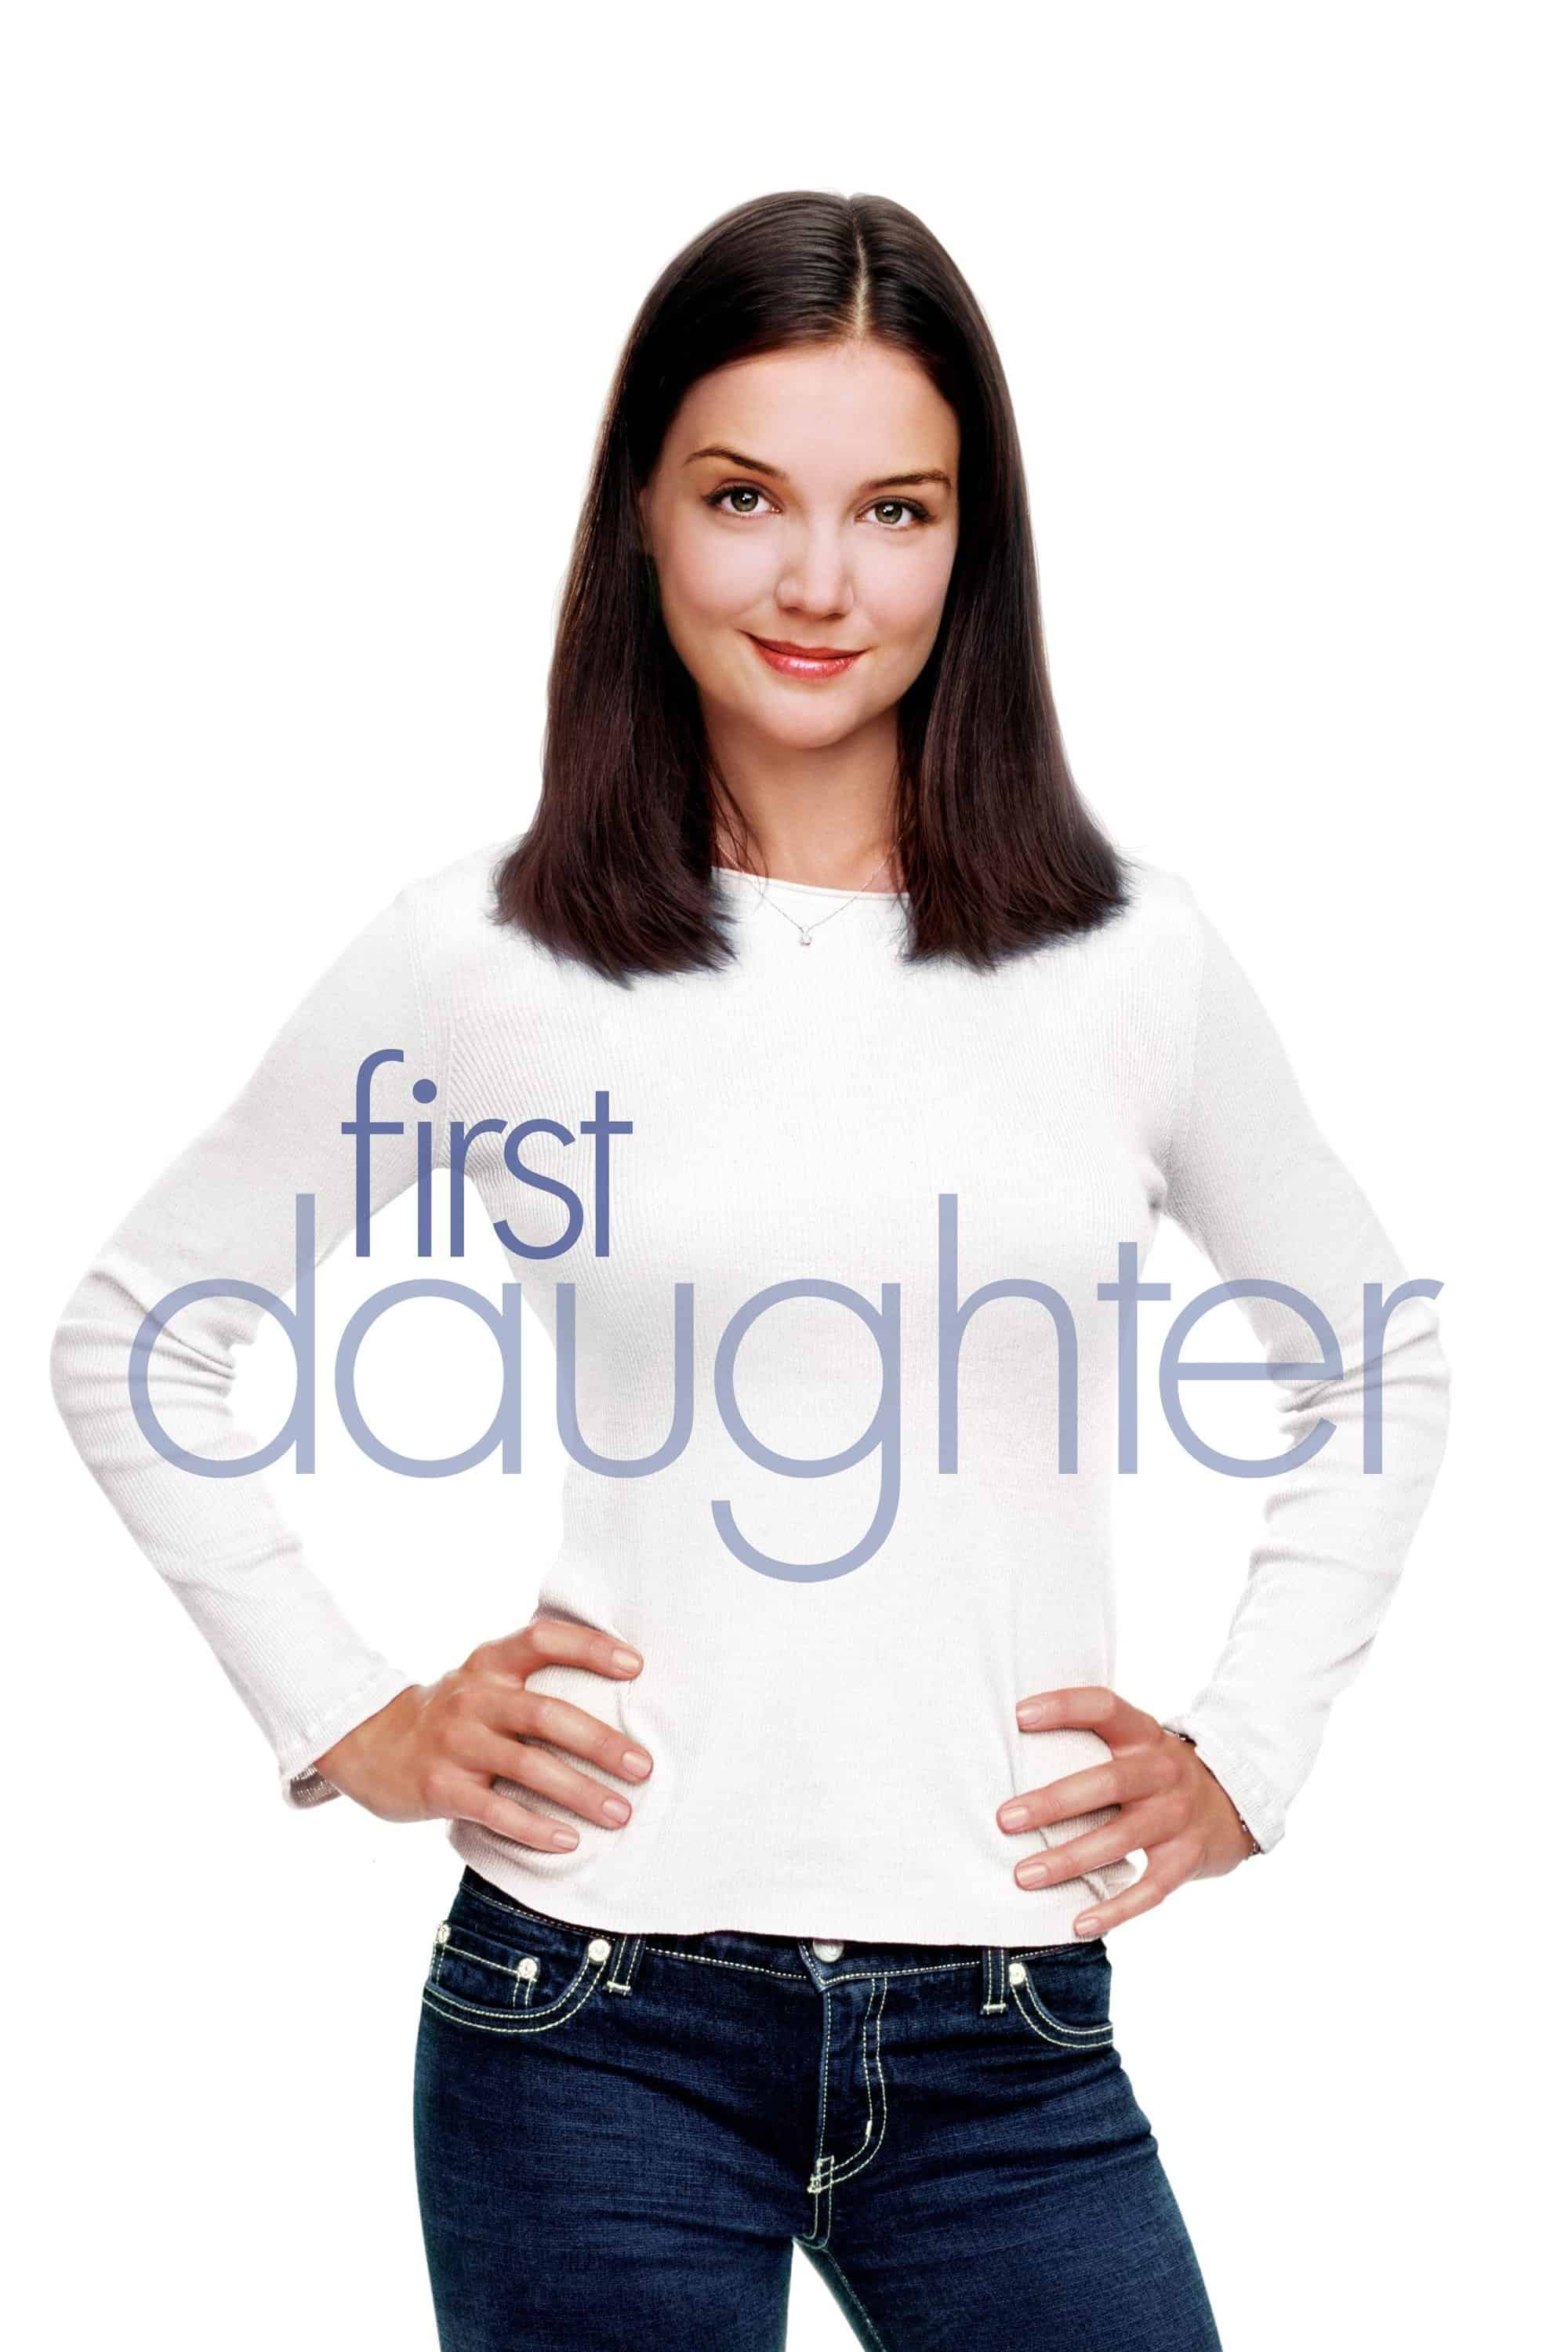 First Daughter, 2004